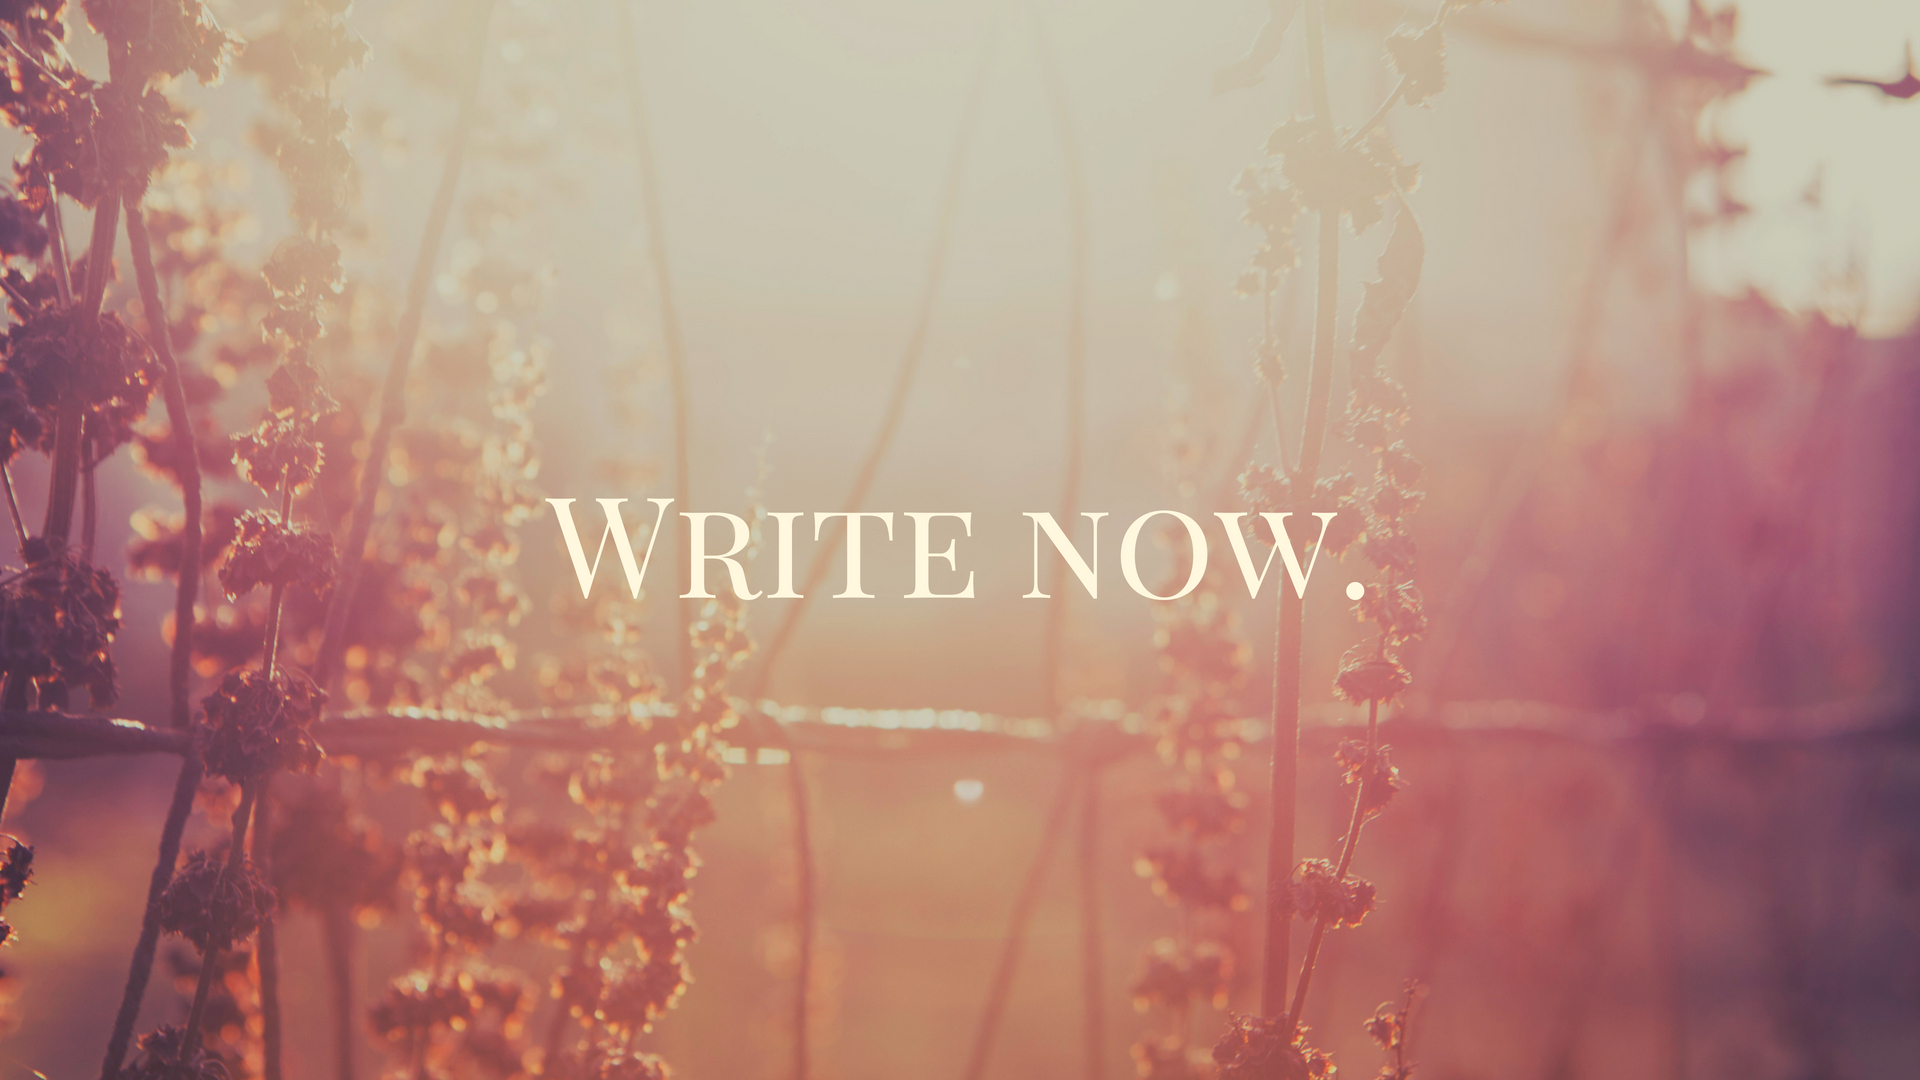 Do you need someone to keep you accountable in your writing? -